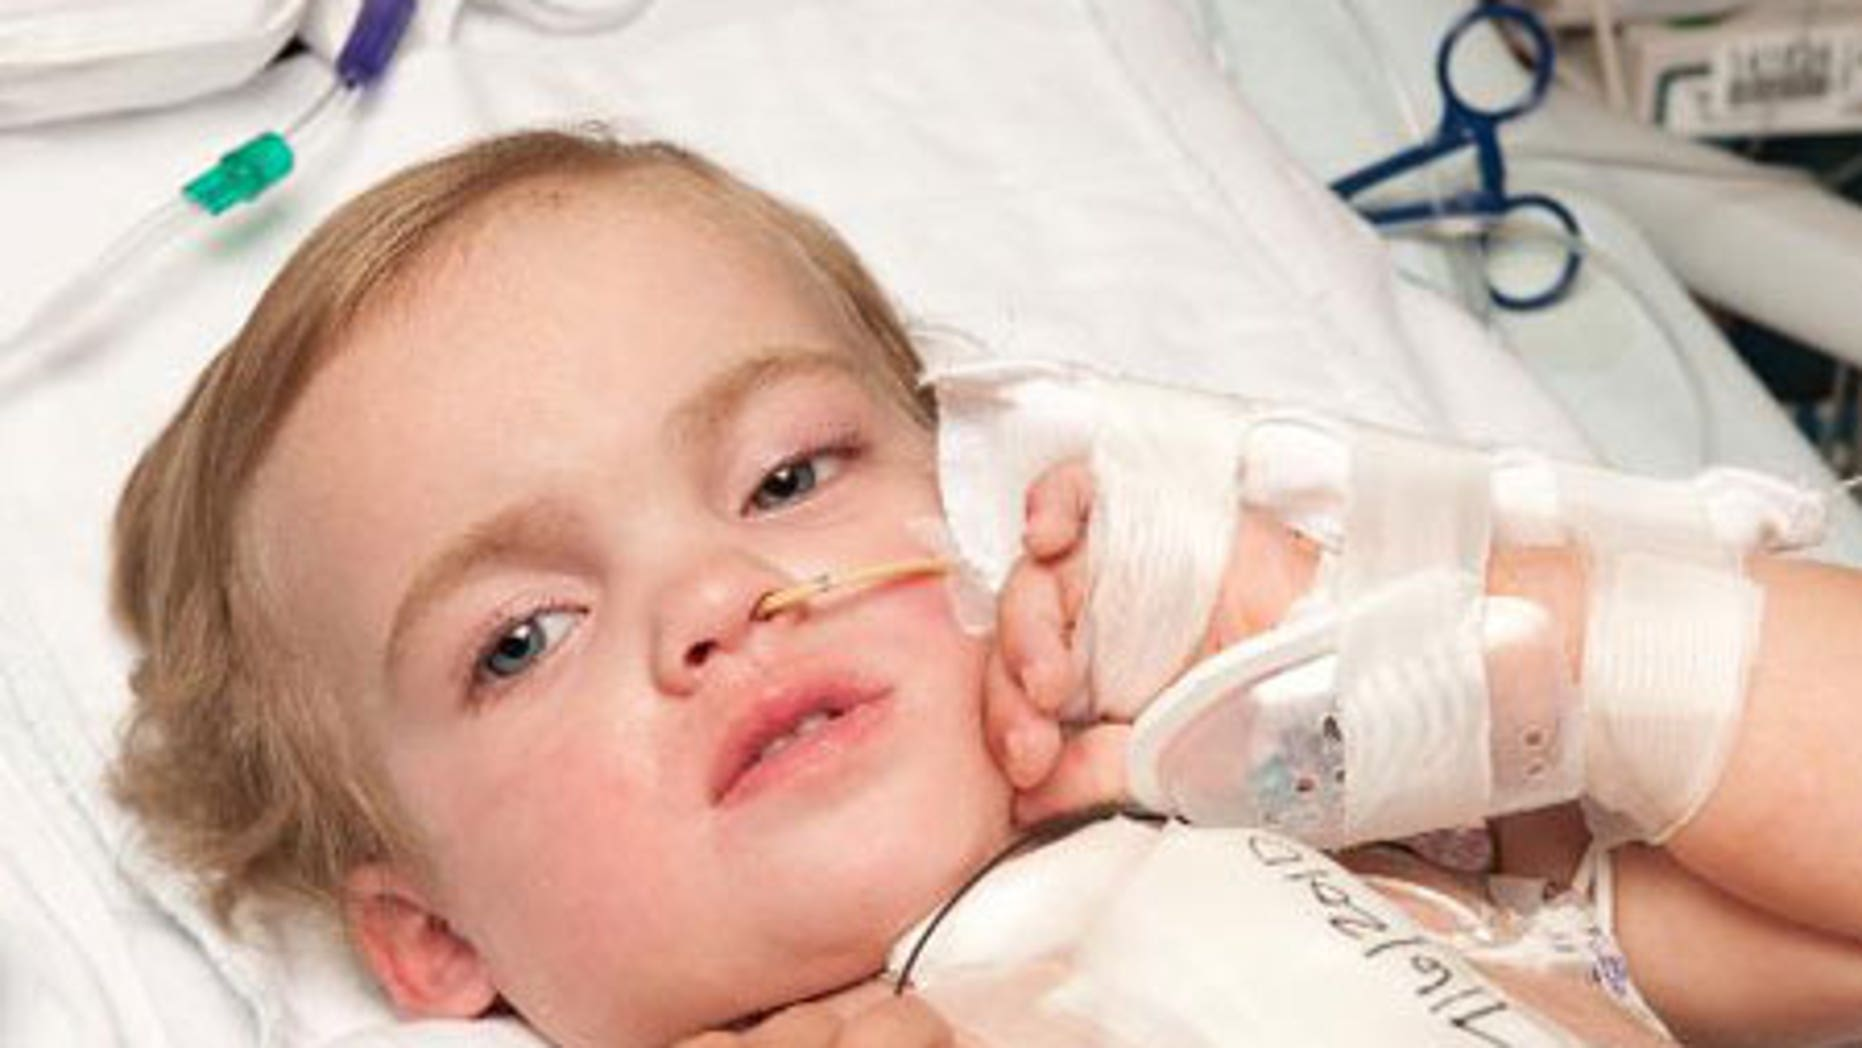 Missouri Boy 2 Youngest In World To Use Artificial Lung Fox News